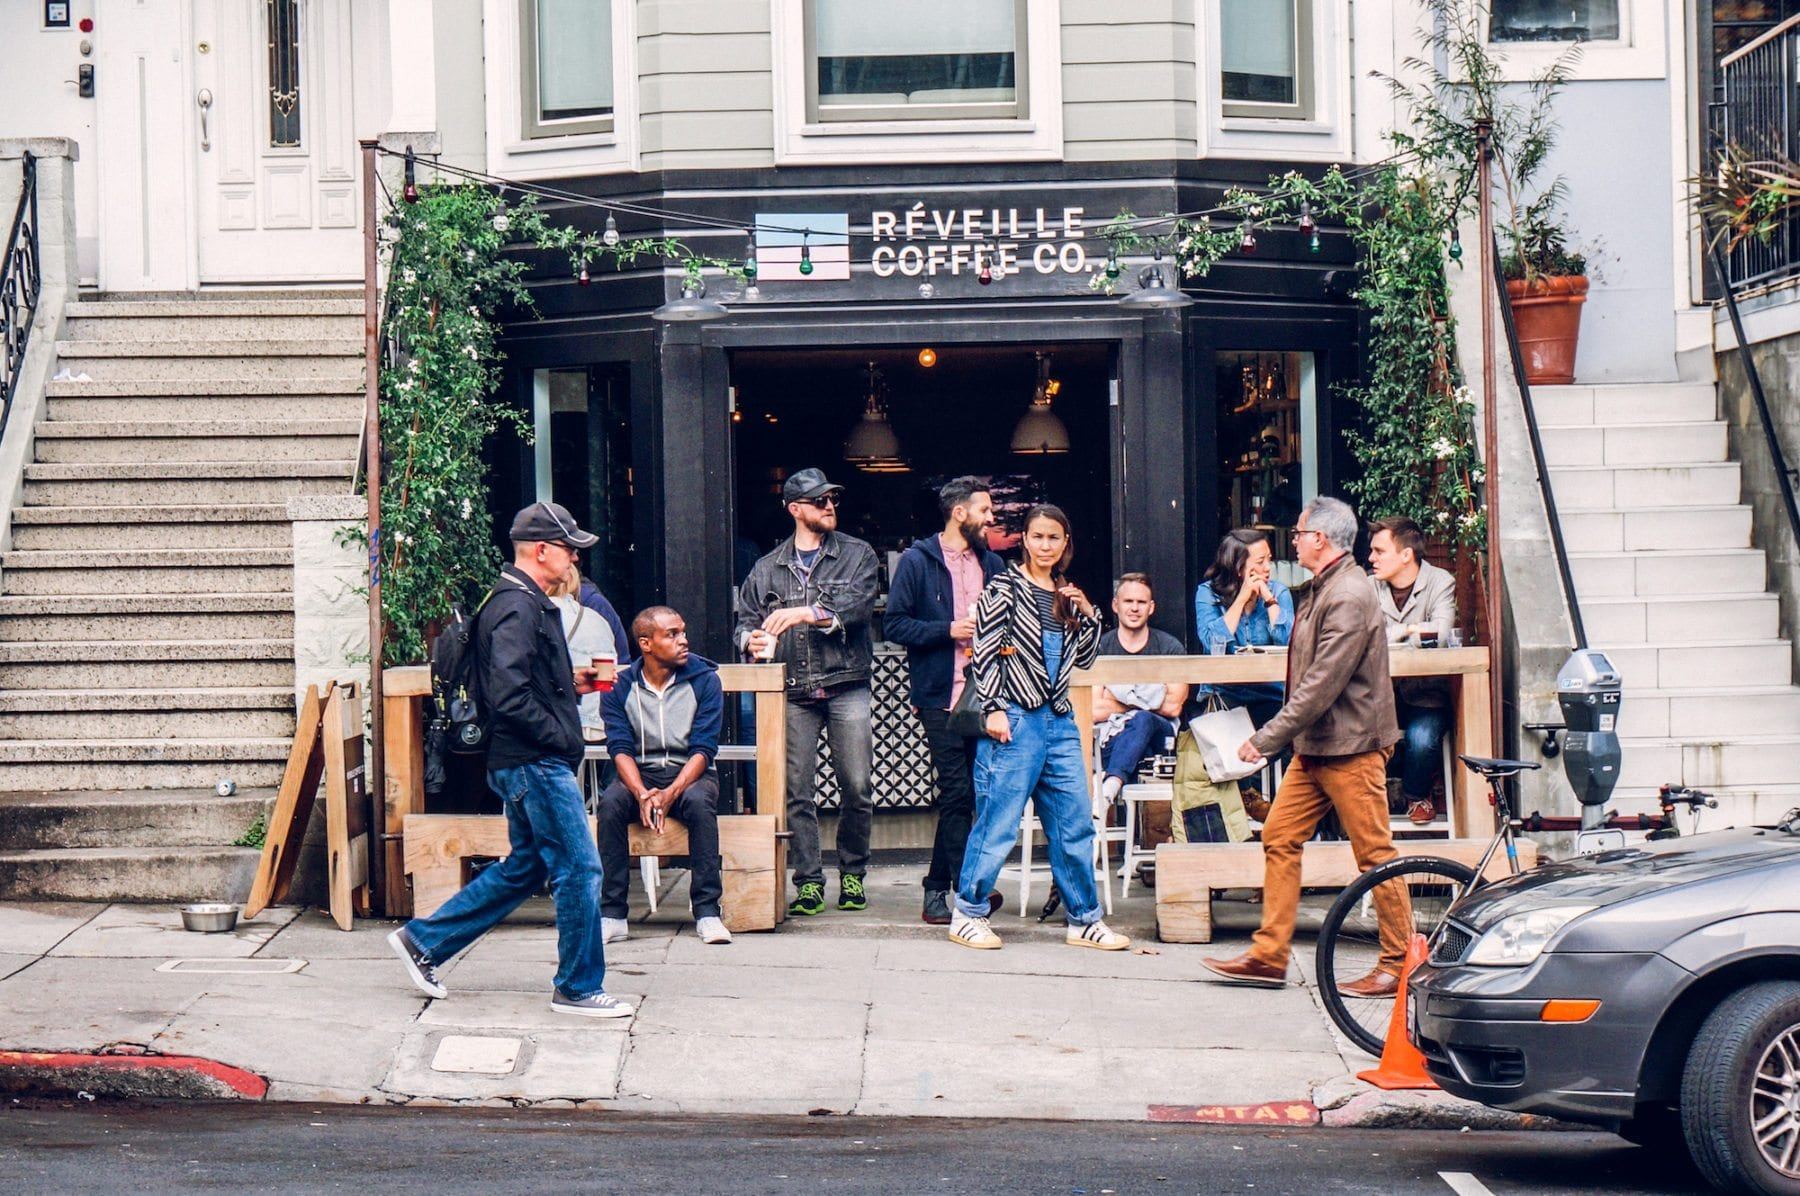 Réveille Coffee's 18th Street Location in the Castro. Photo: Kyle Legg, 49Miles.com.